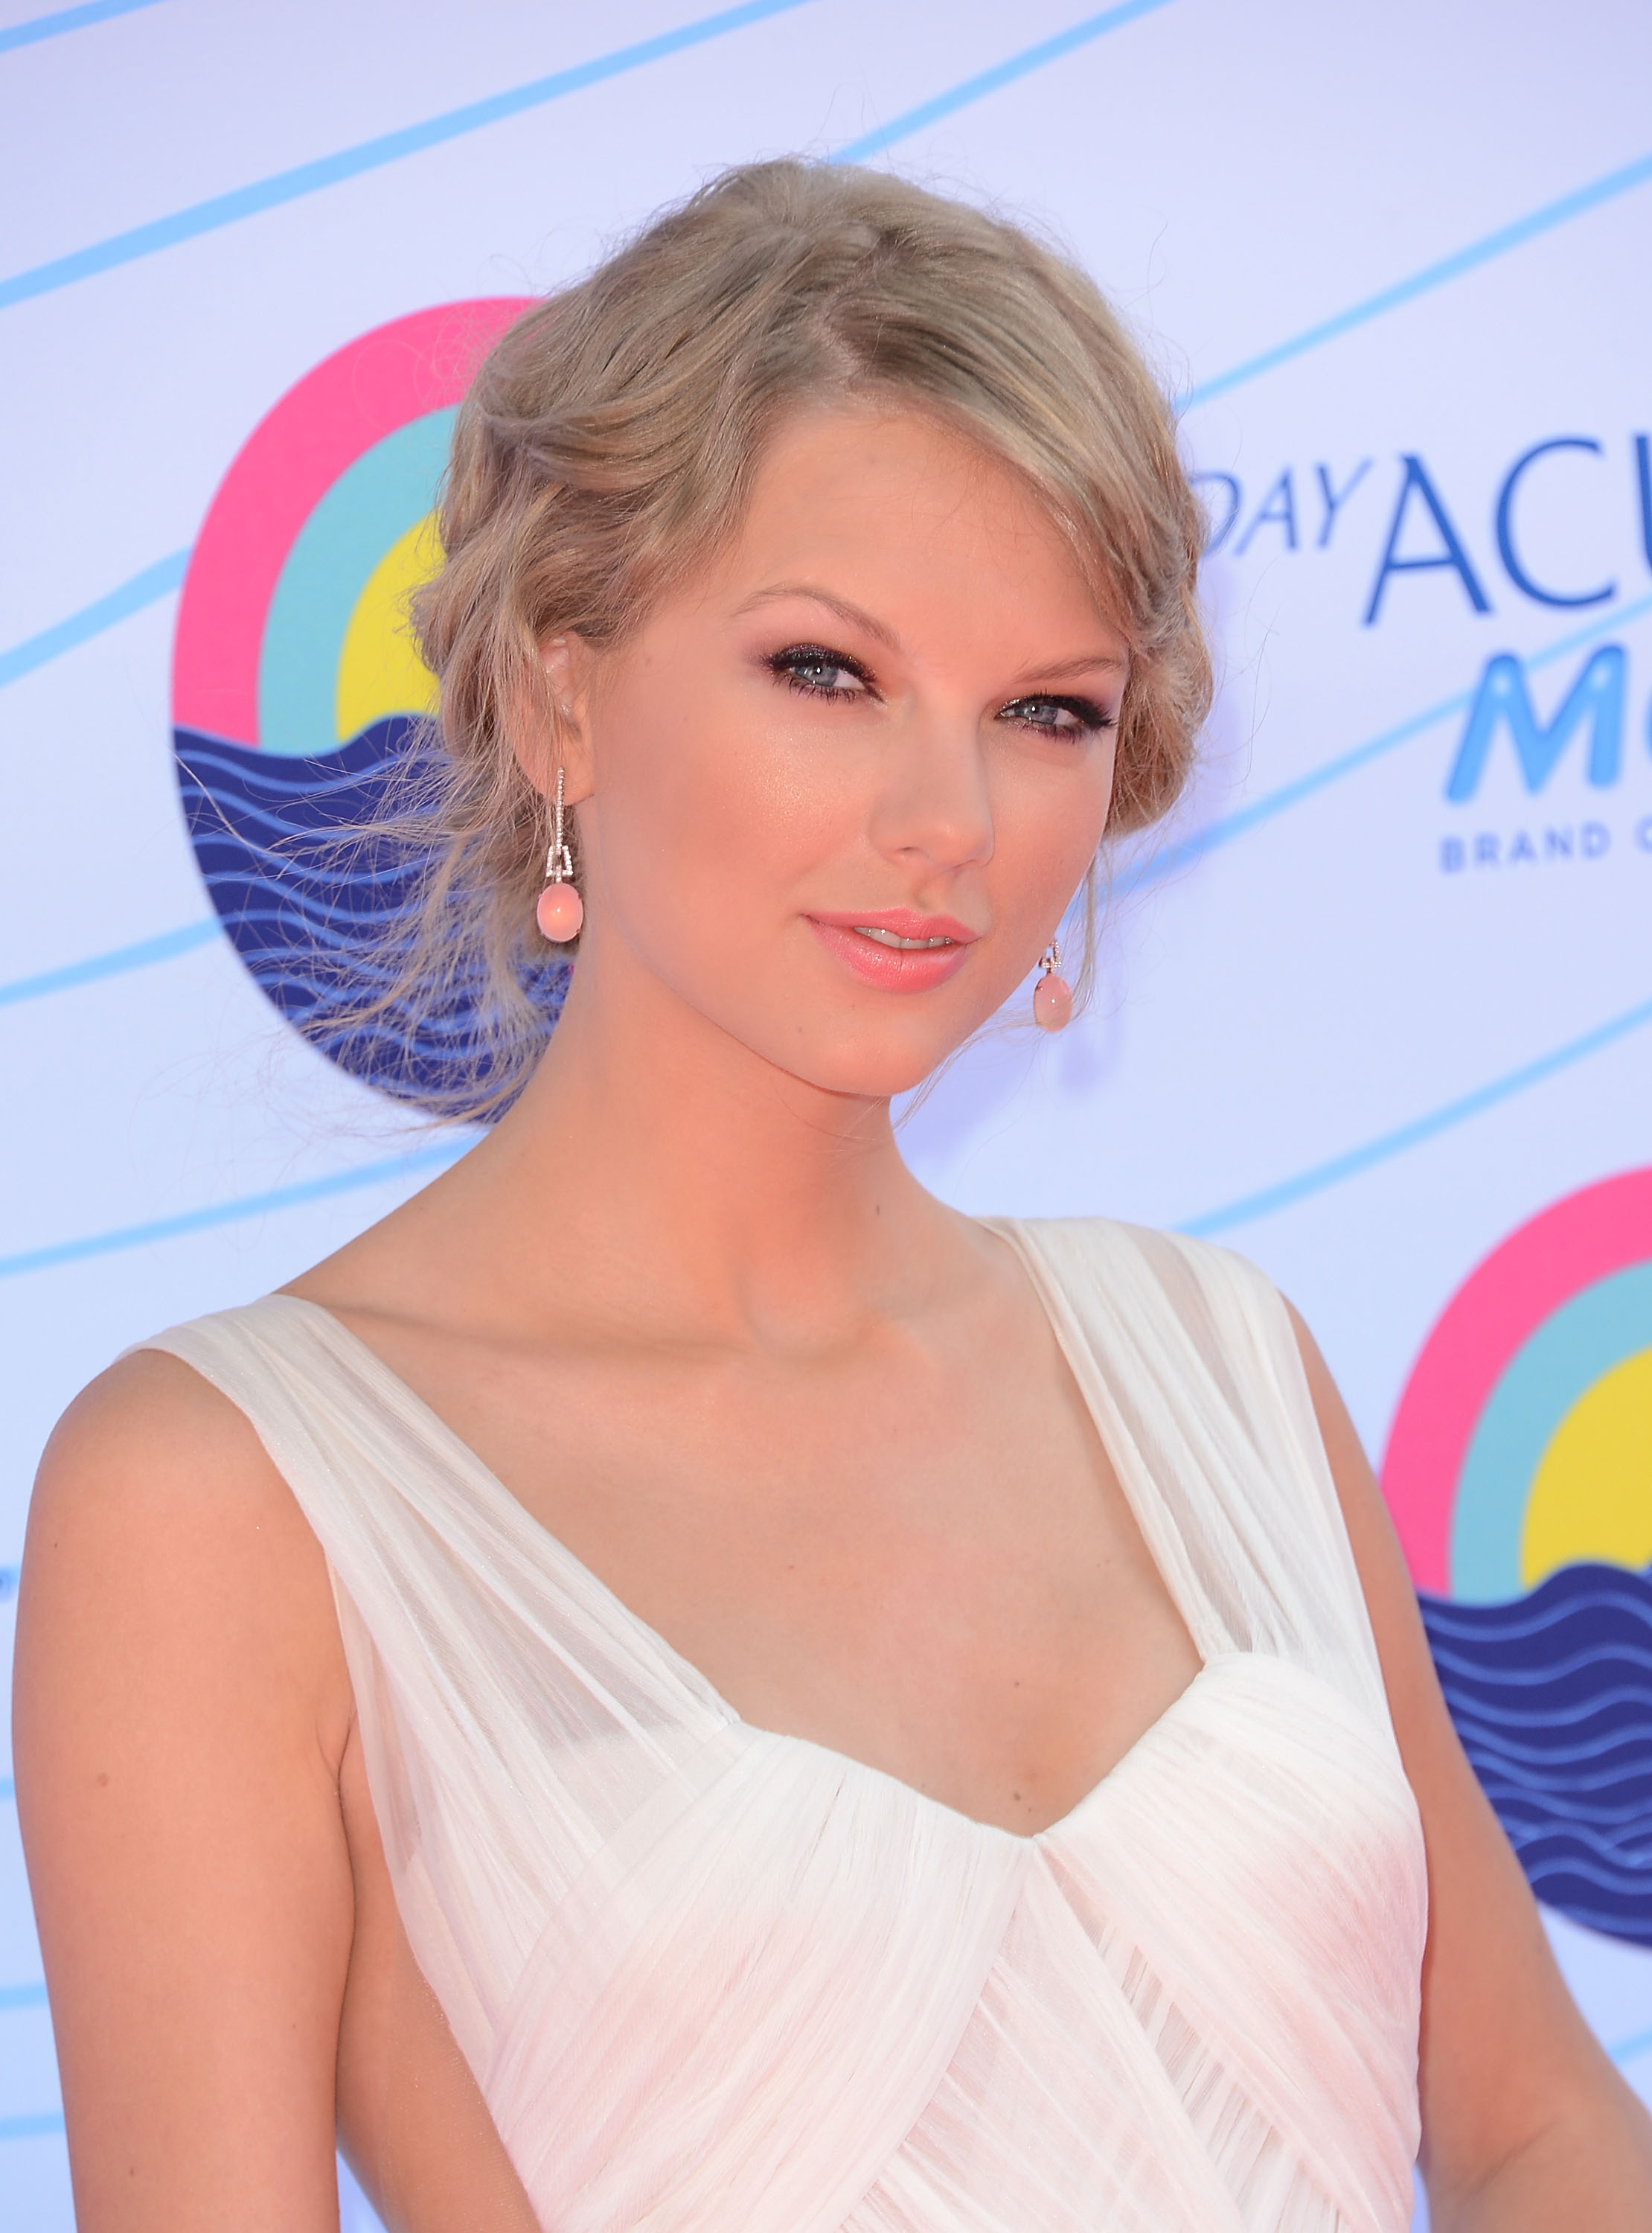 swift dating schwarzenegger Is miley cyrus dating patrick schwarzenegger singer miley cyrus has been keeping her love life on the schwarzenegger was rumored to be dating taylor swift in 2012.